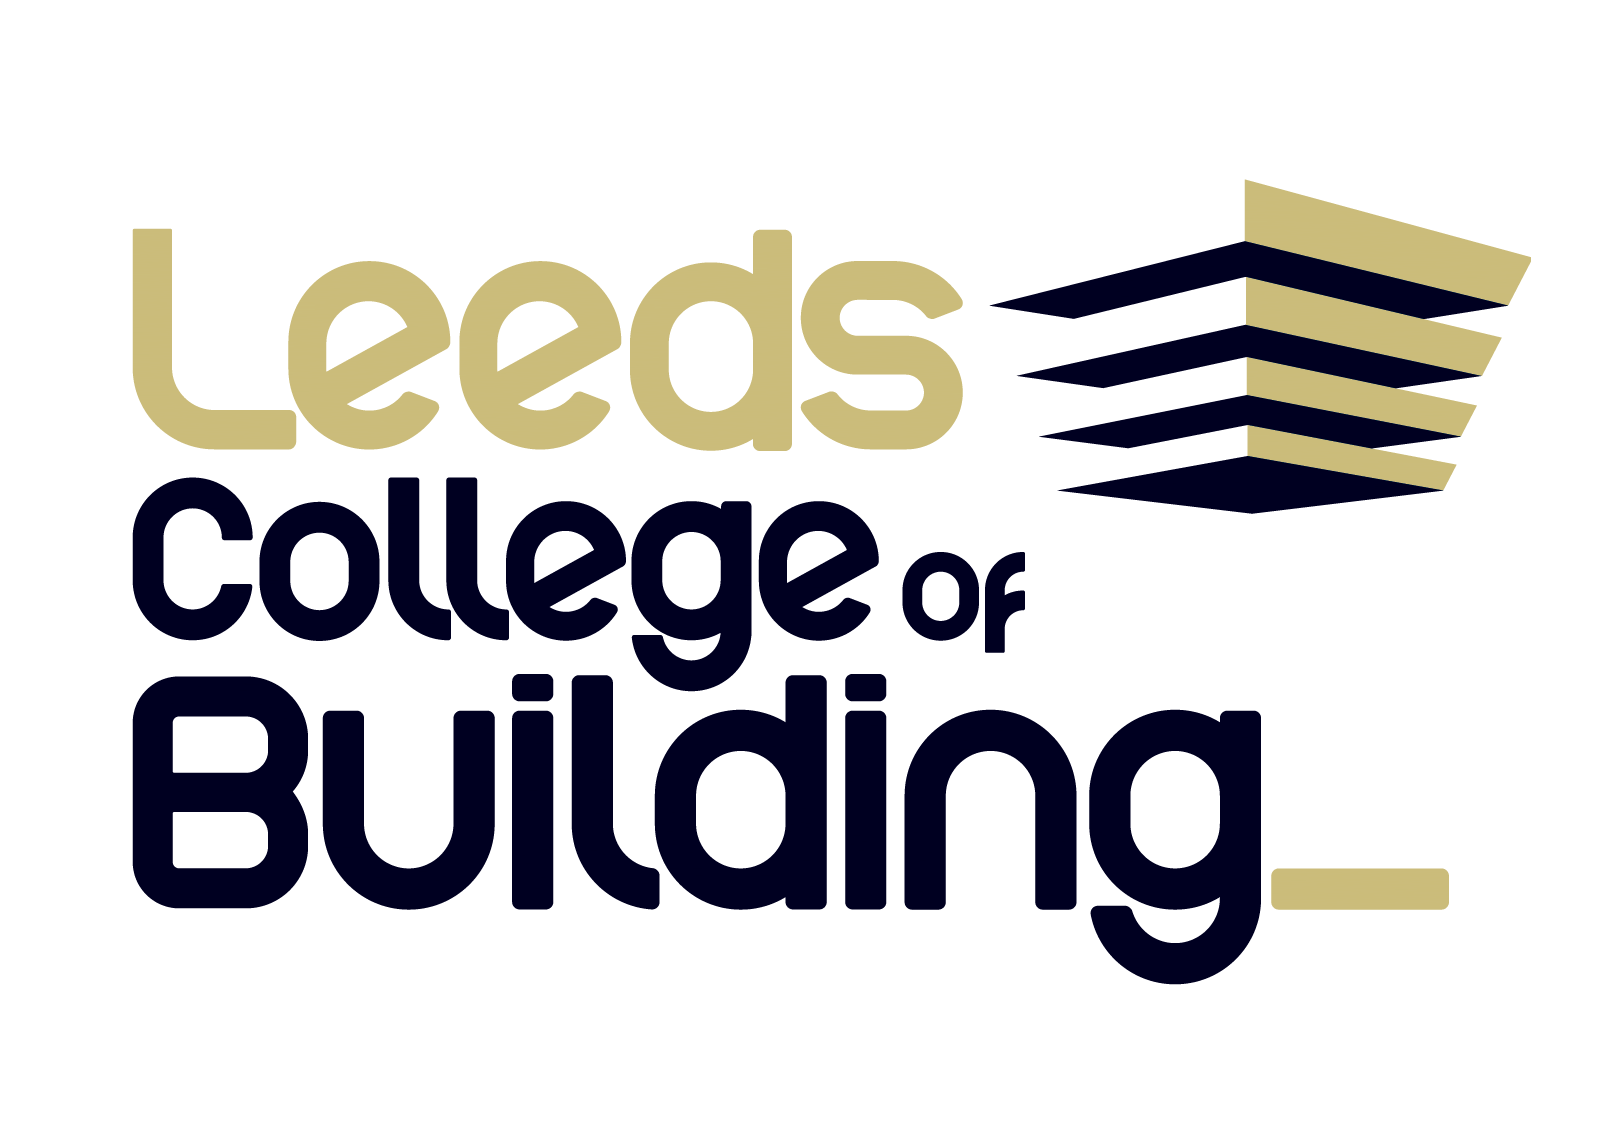 leeds college building